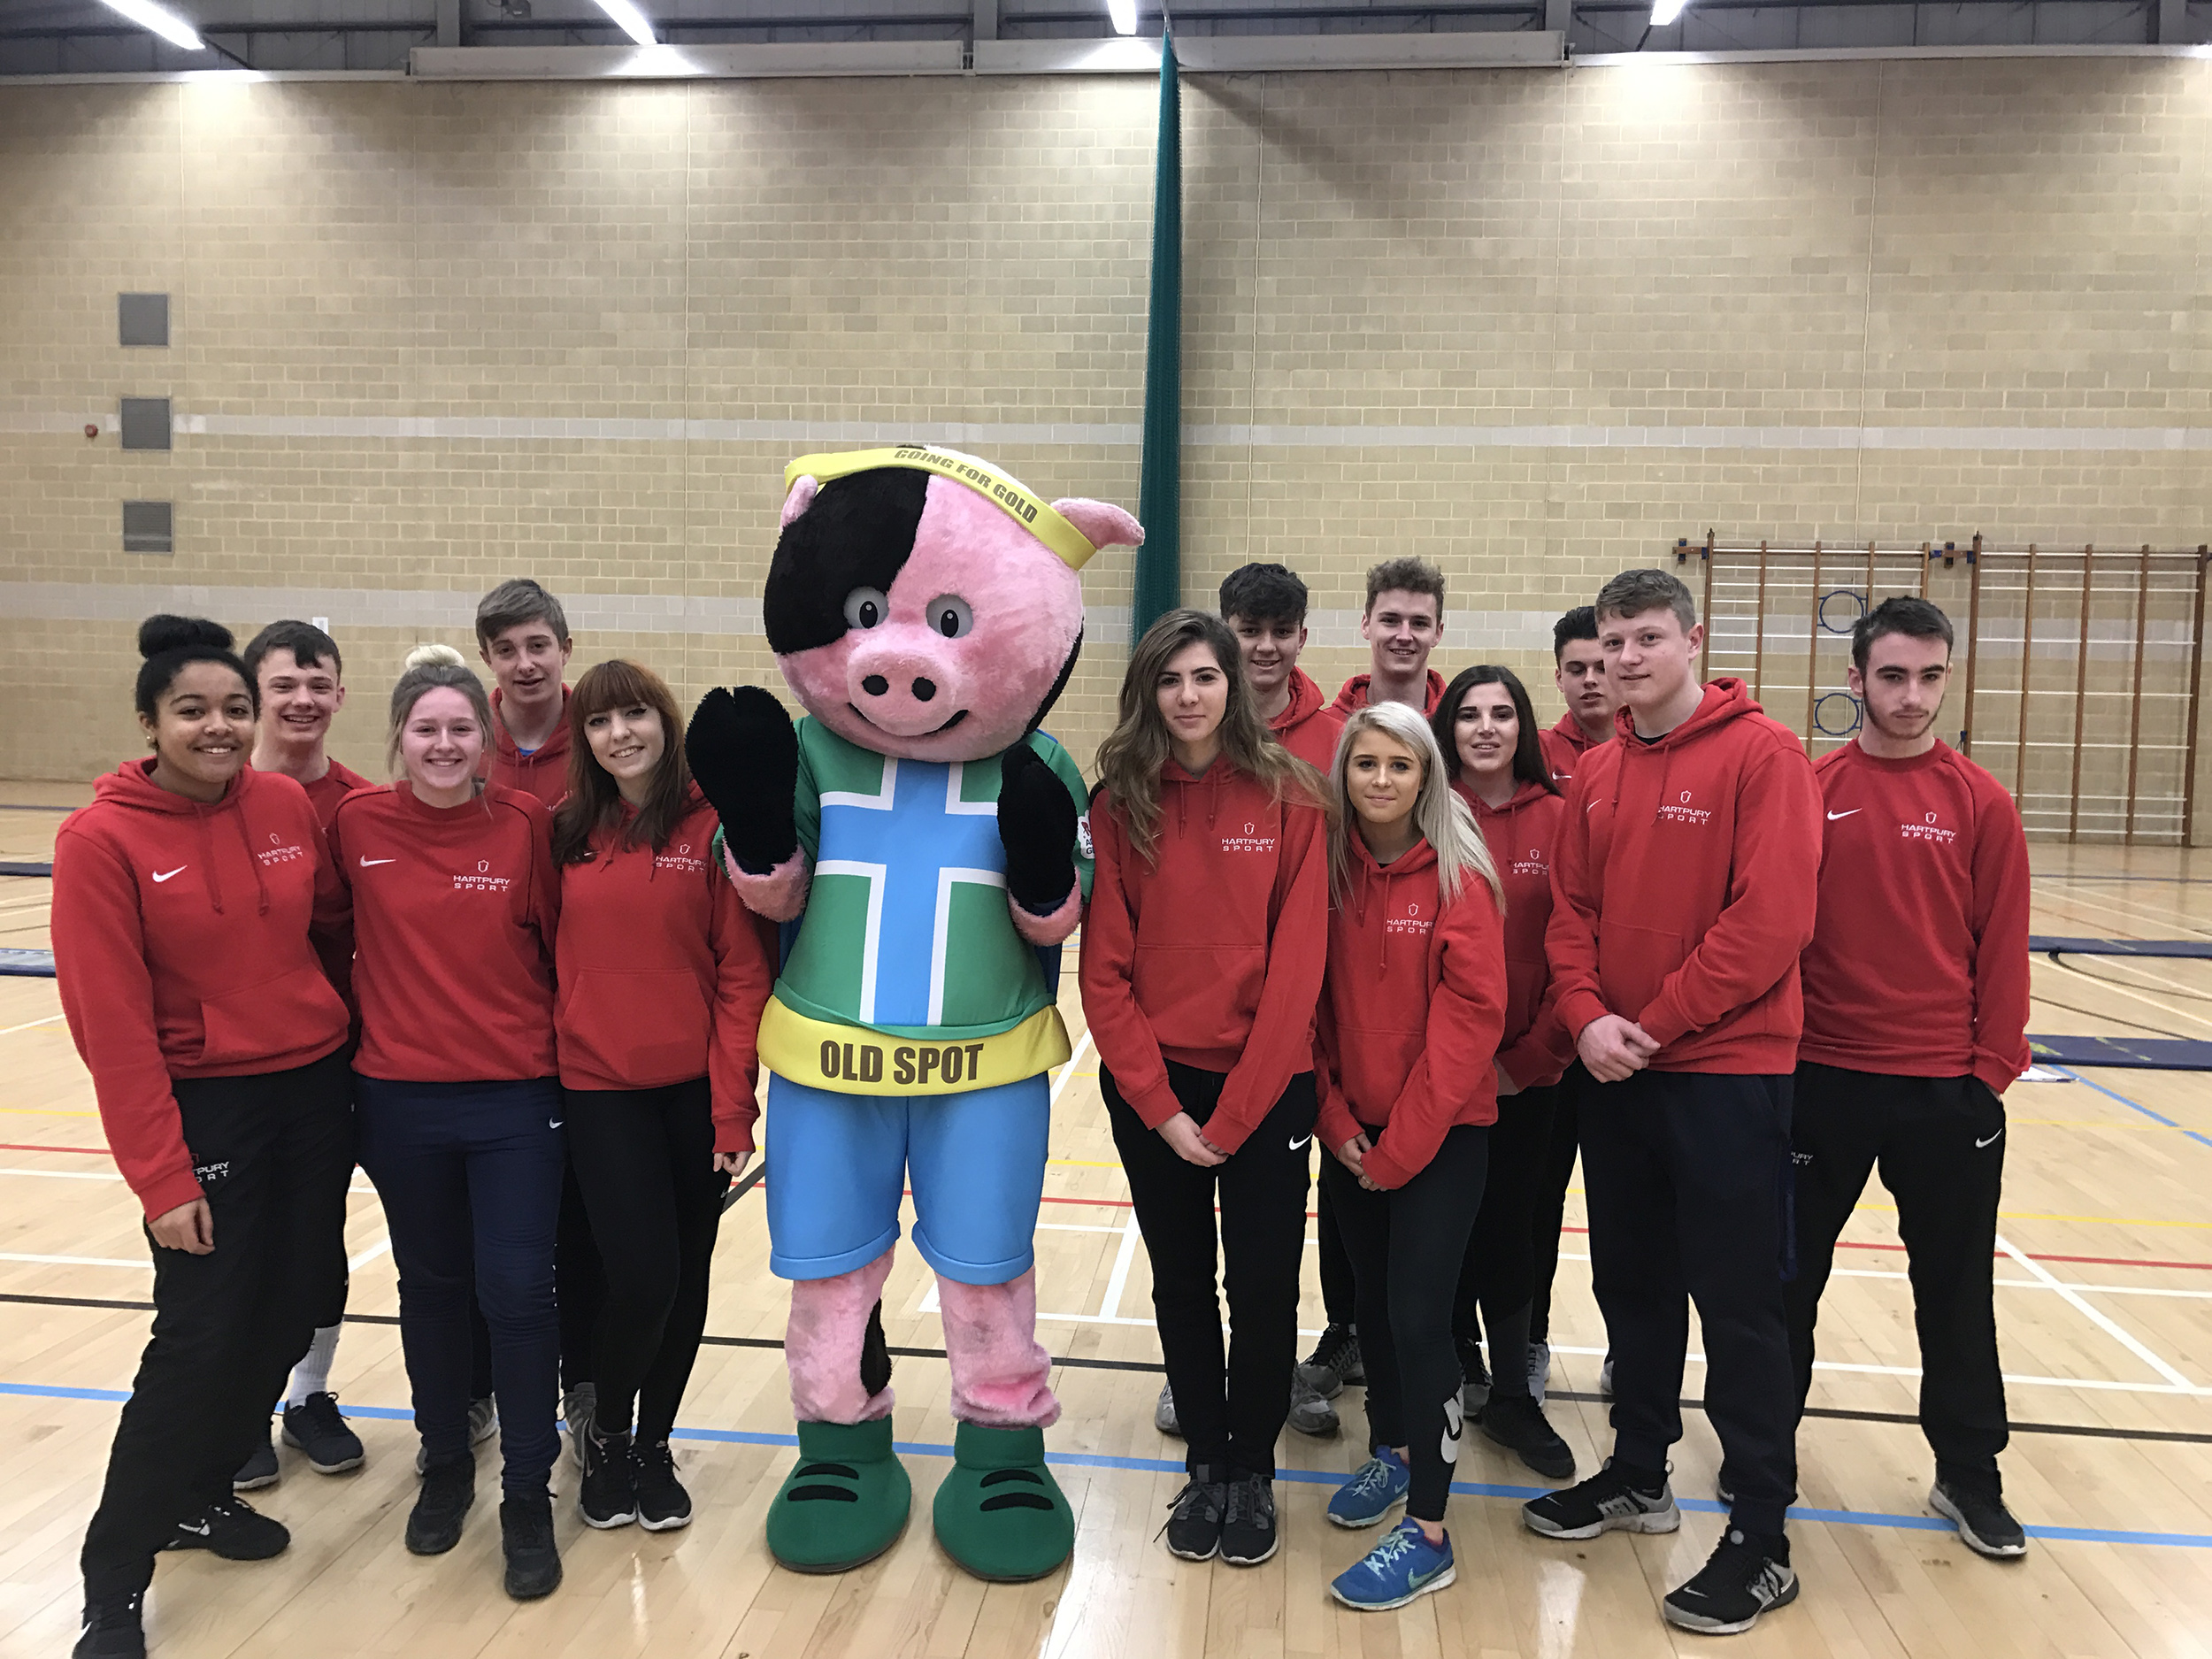 Image For Hartpuryu0027s Students Help Raise The Roof At School Sports Games